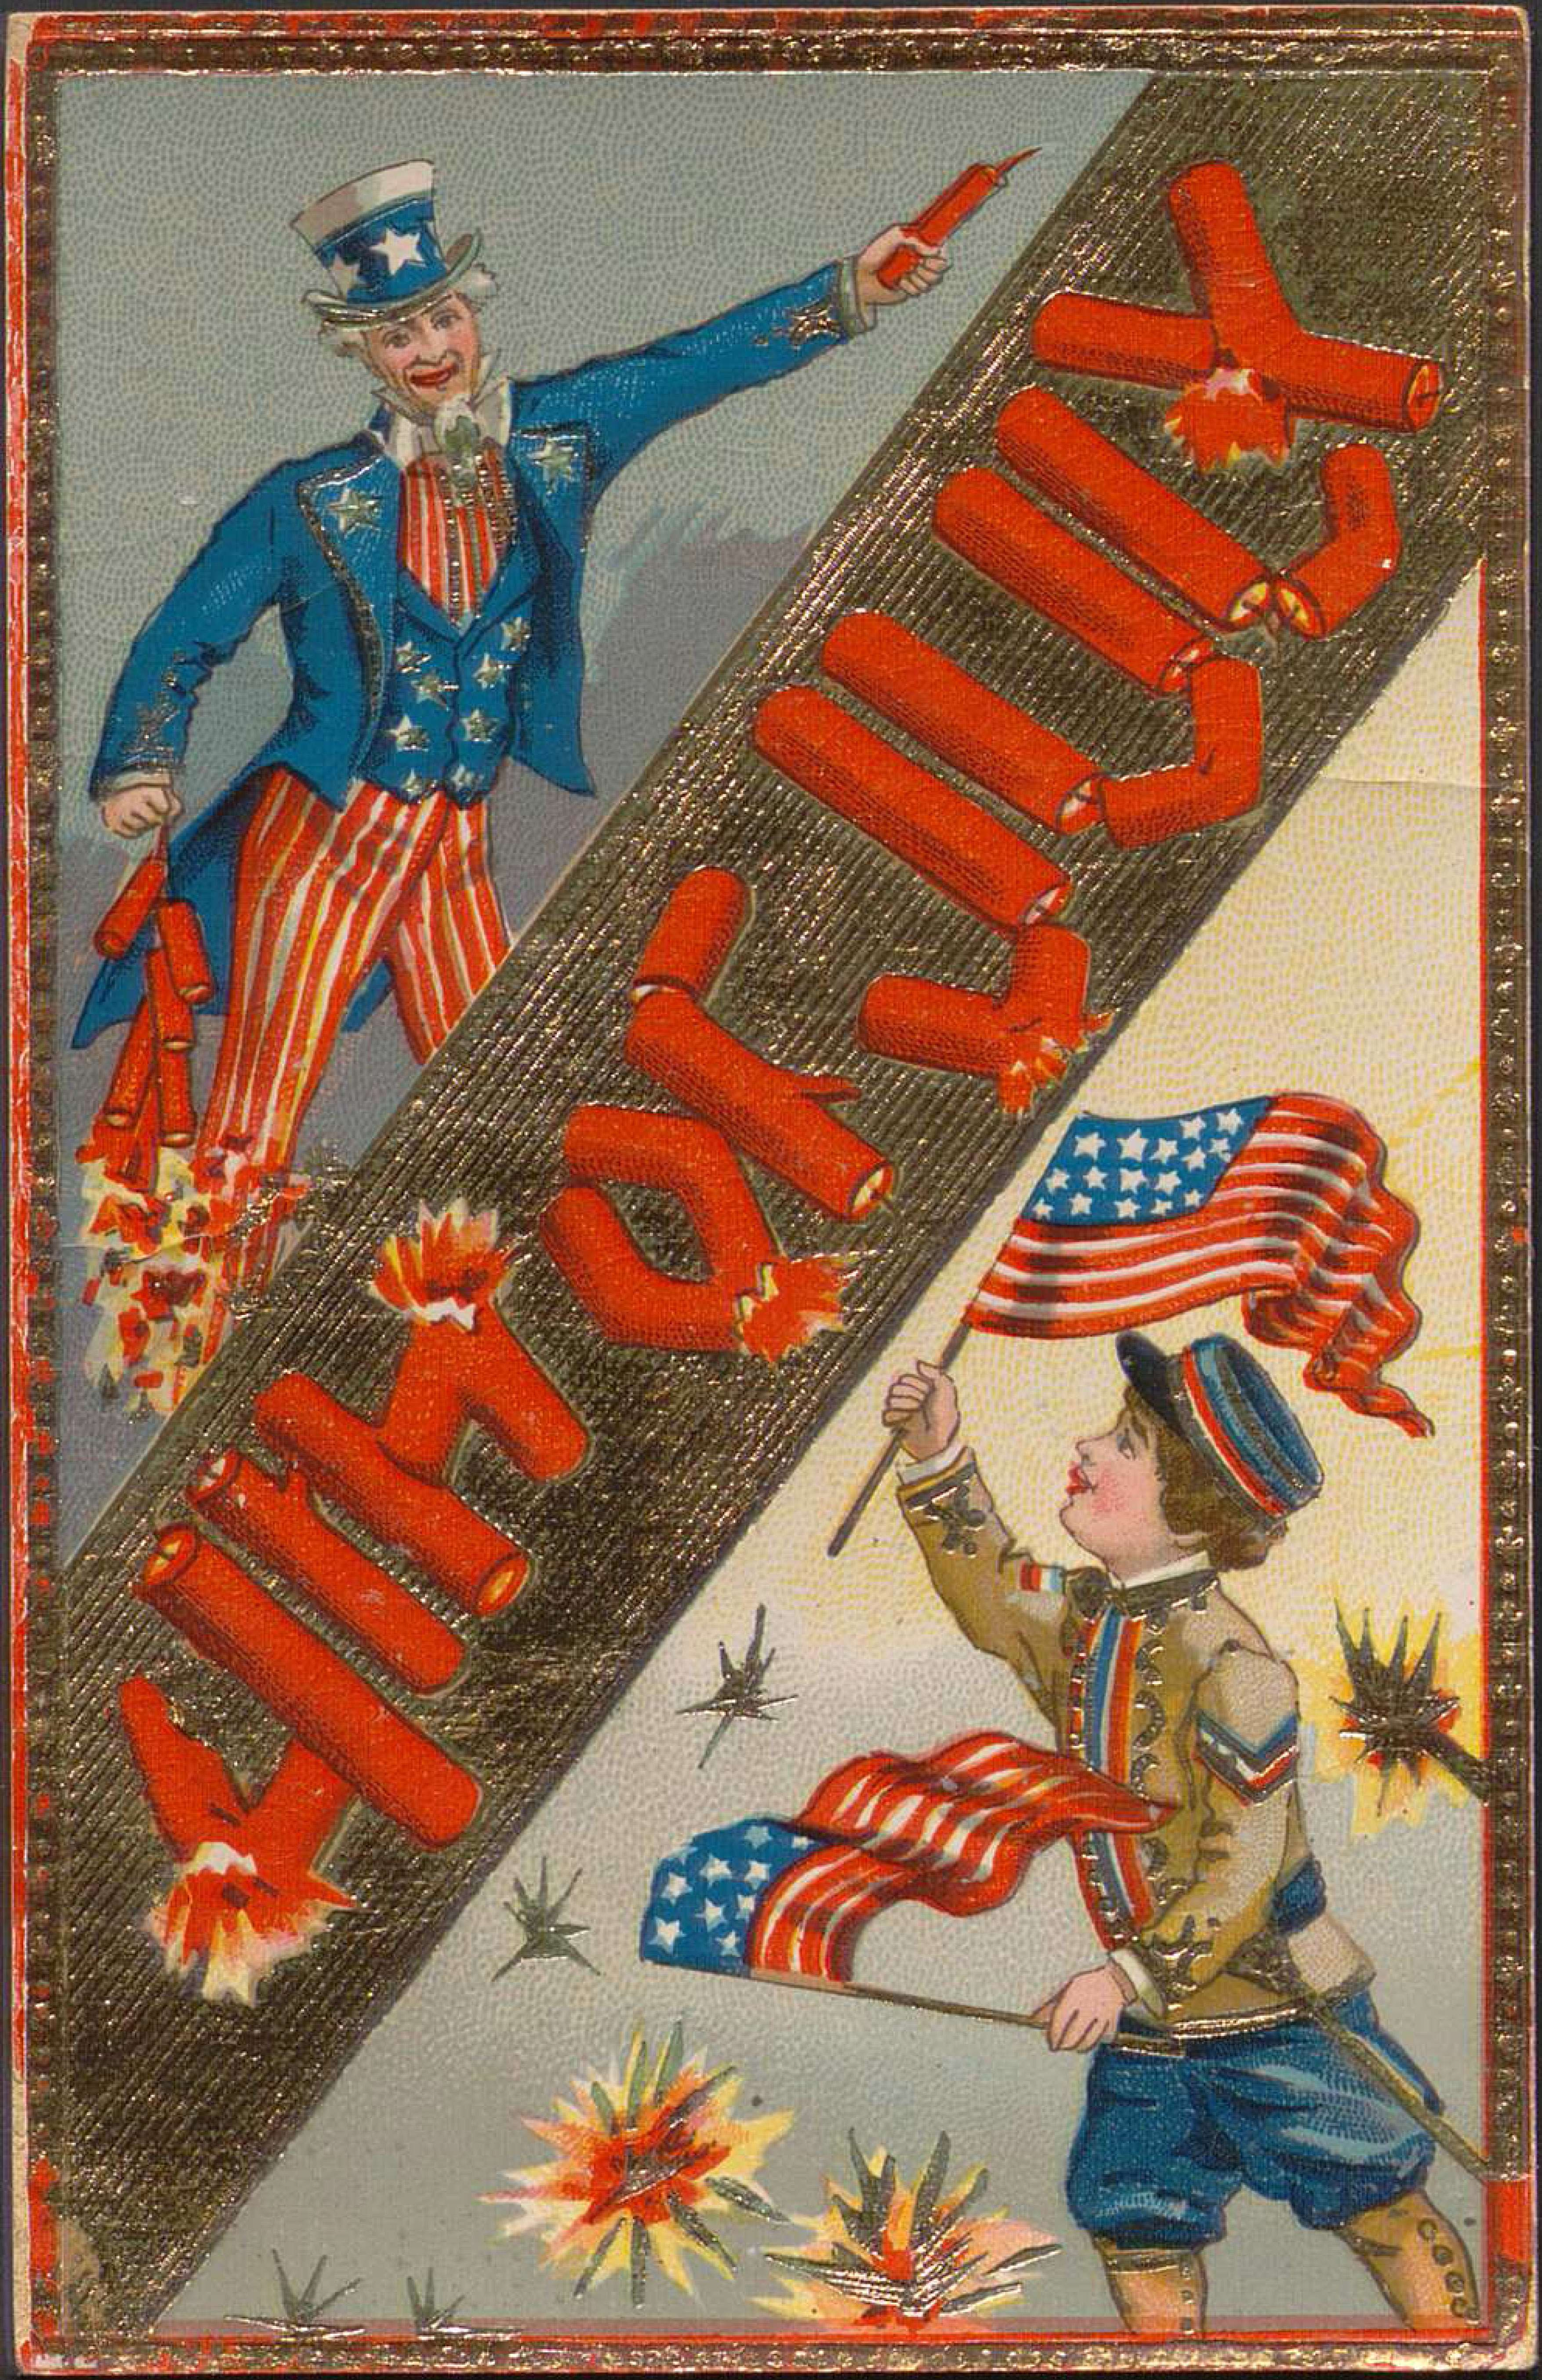 """Postcard with color illustrations of a child in military dress waving American flags and Uncle Sam with fireworks. Firework motifs are spread throughout, including firework sticks spelling out """"4th of July""""."""